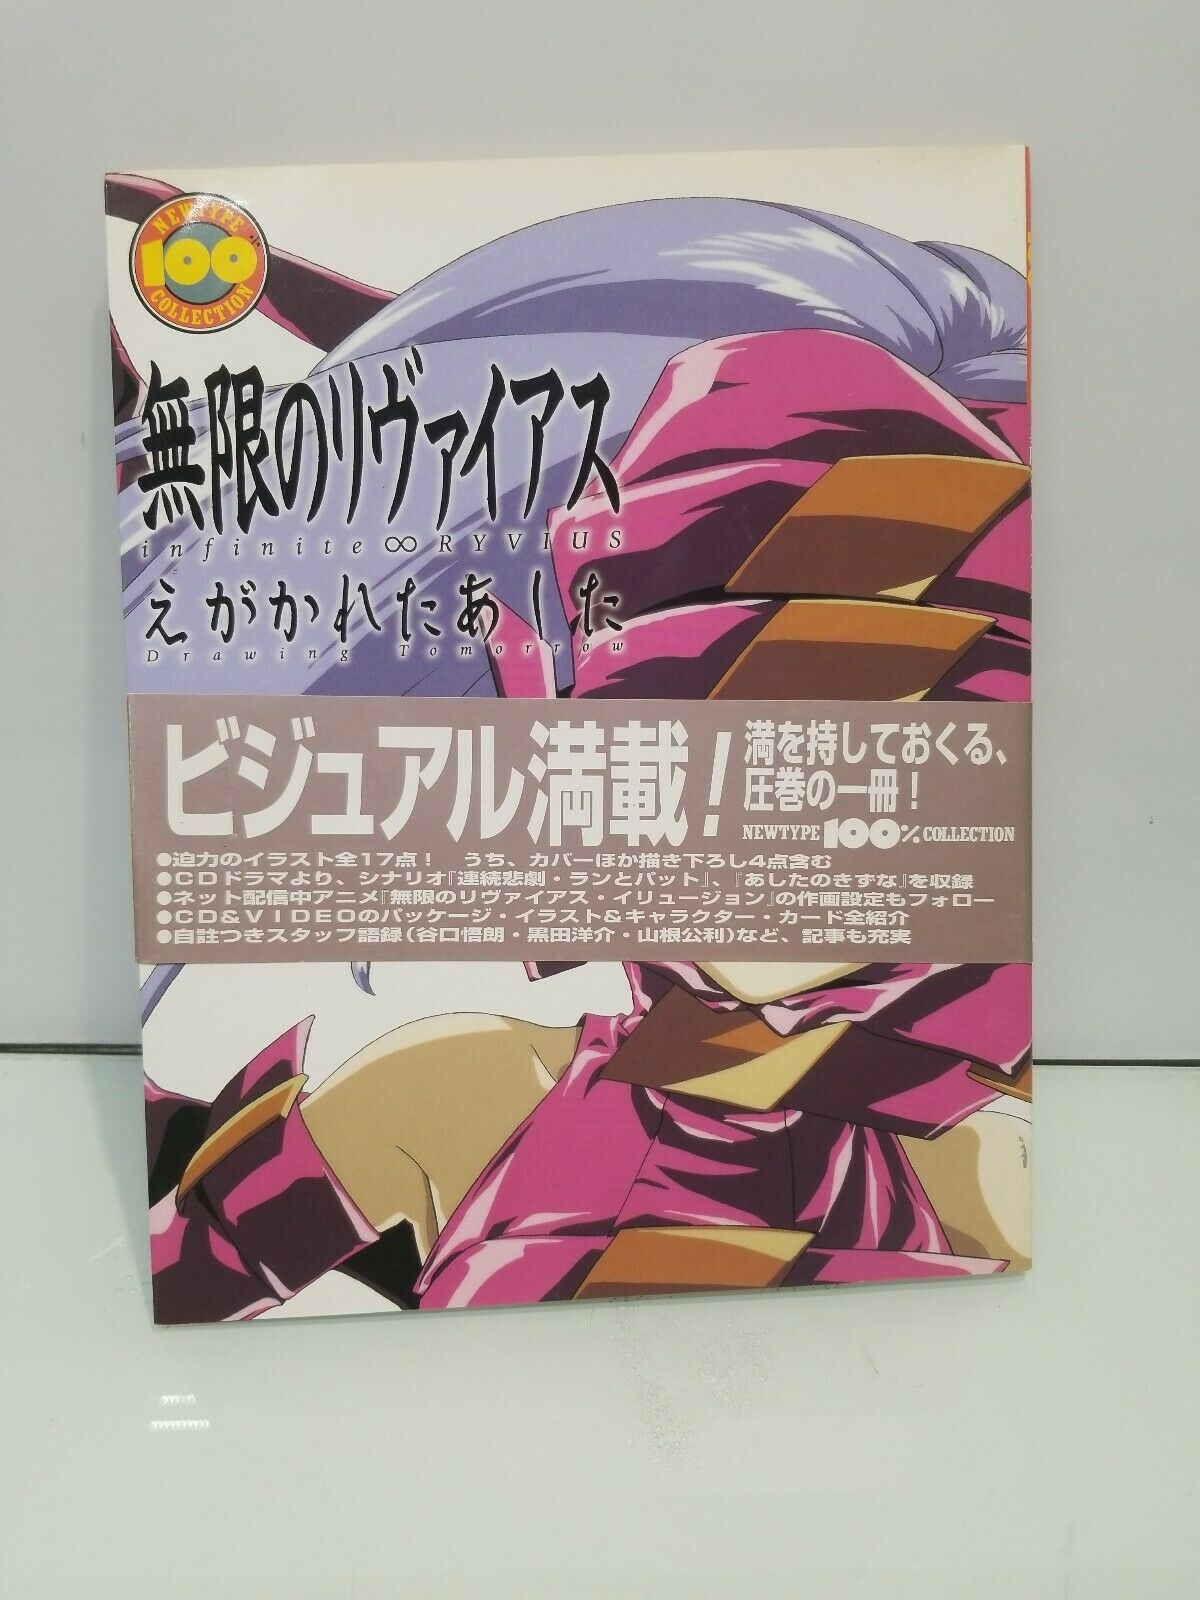 Infinite Ryvius Drawing Tomorrow Japanese Anime Illustrations Art Book For Sale Online